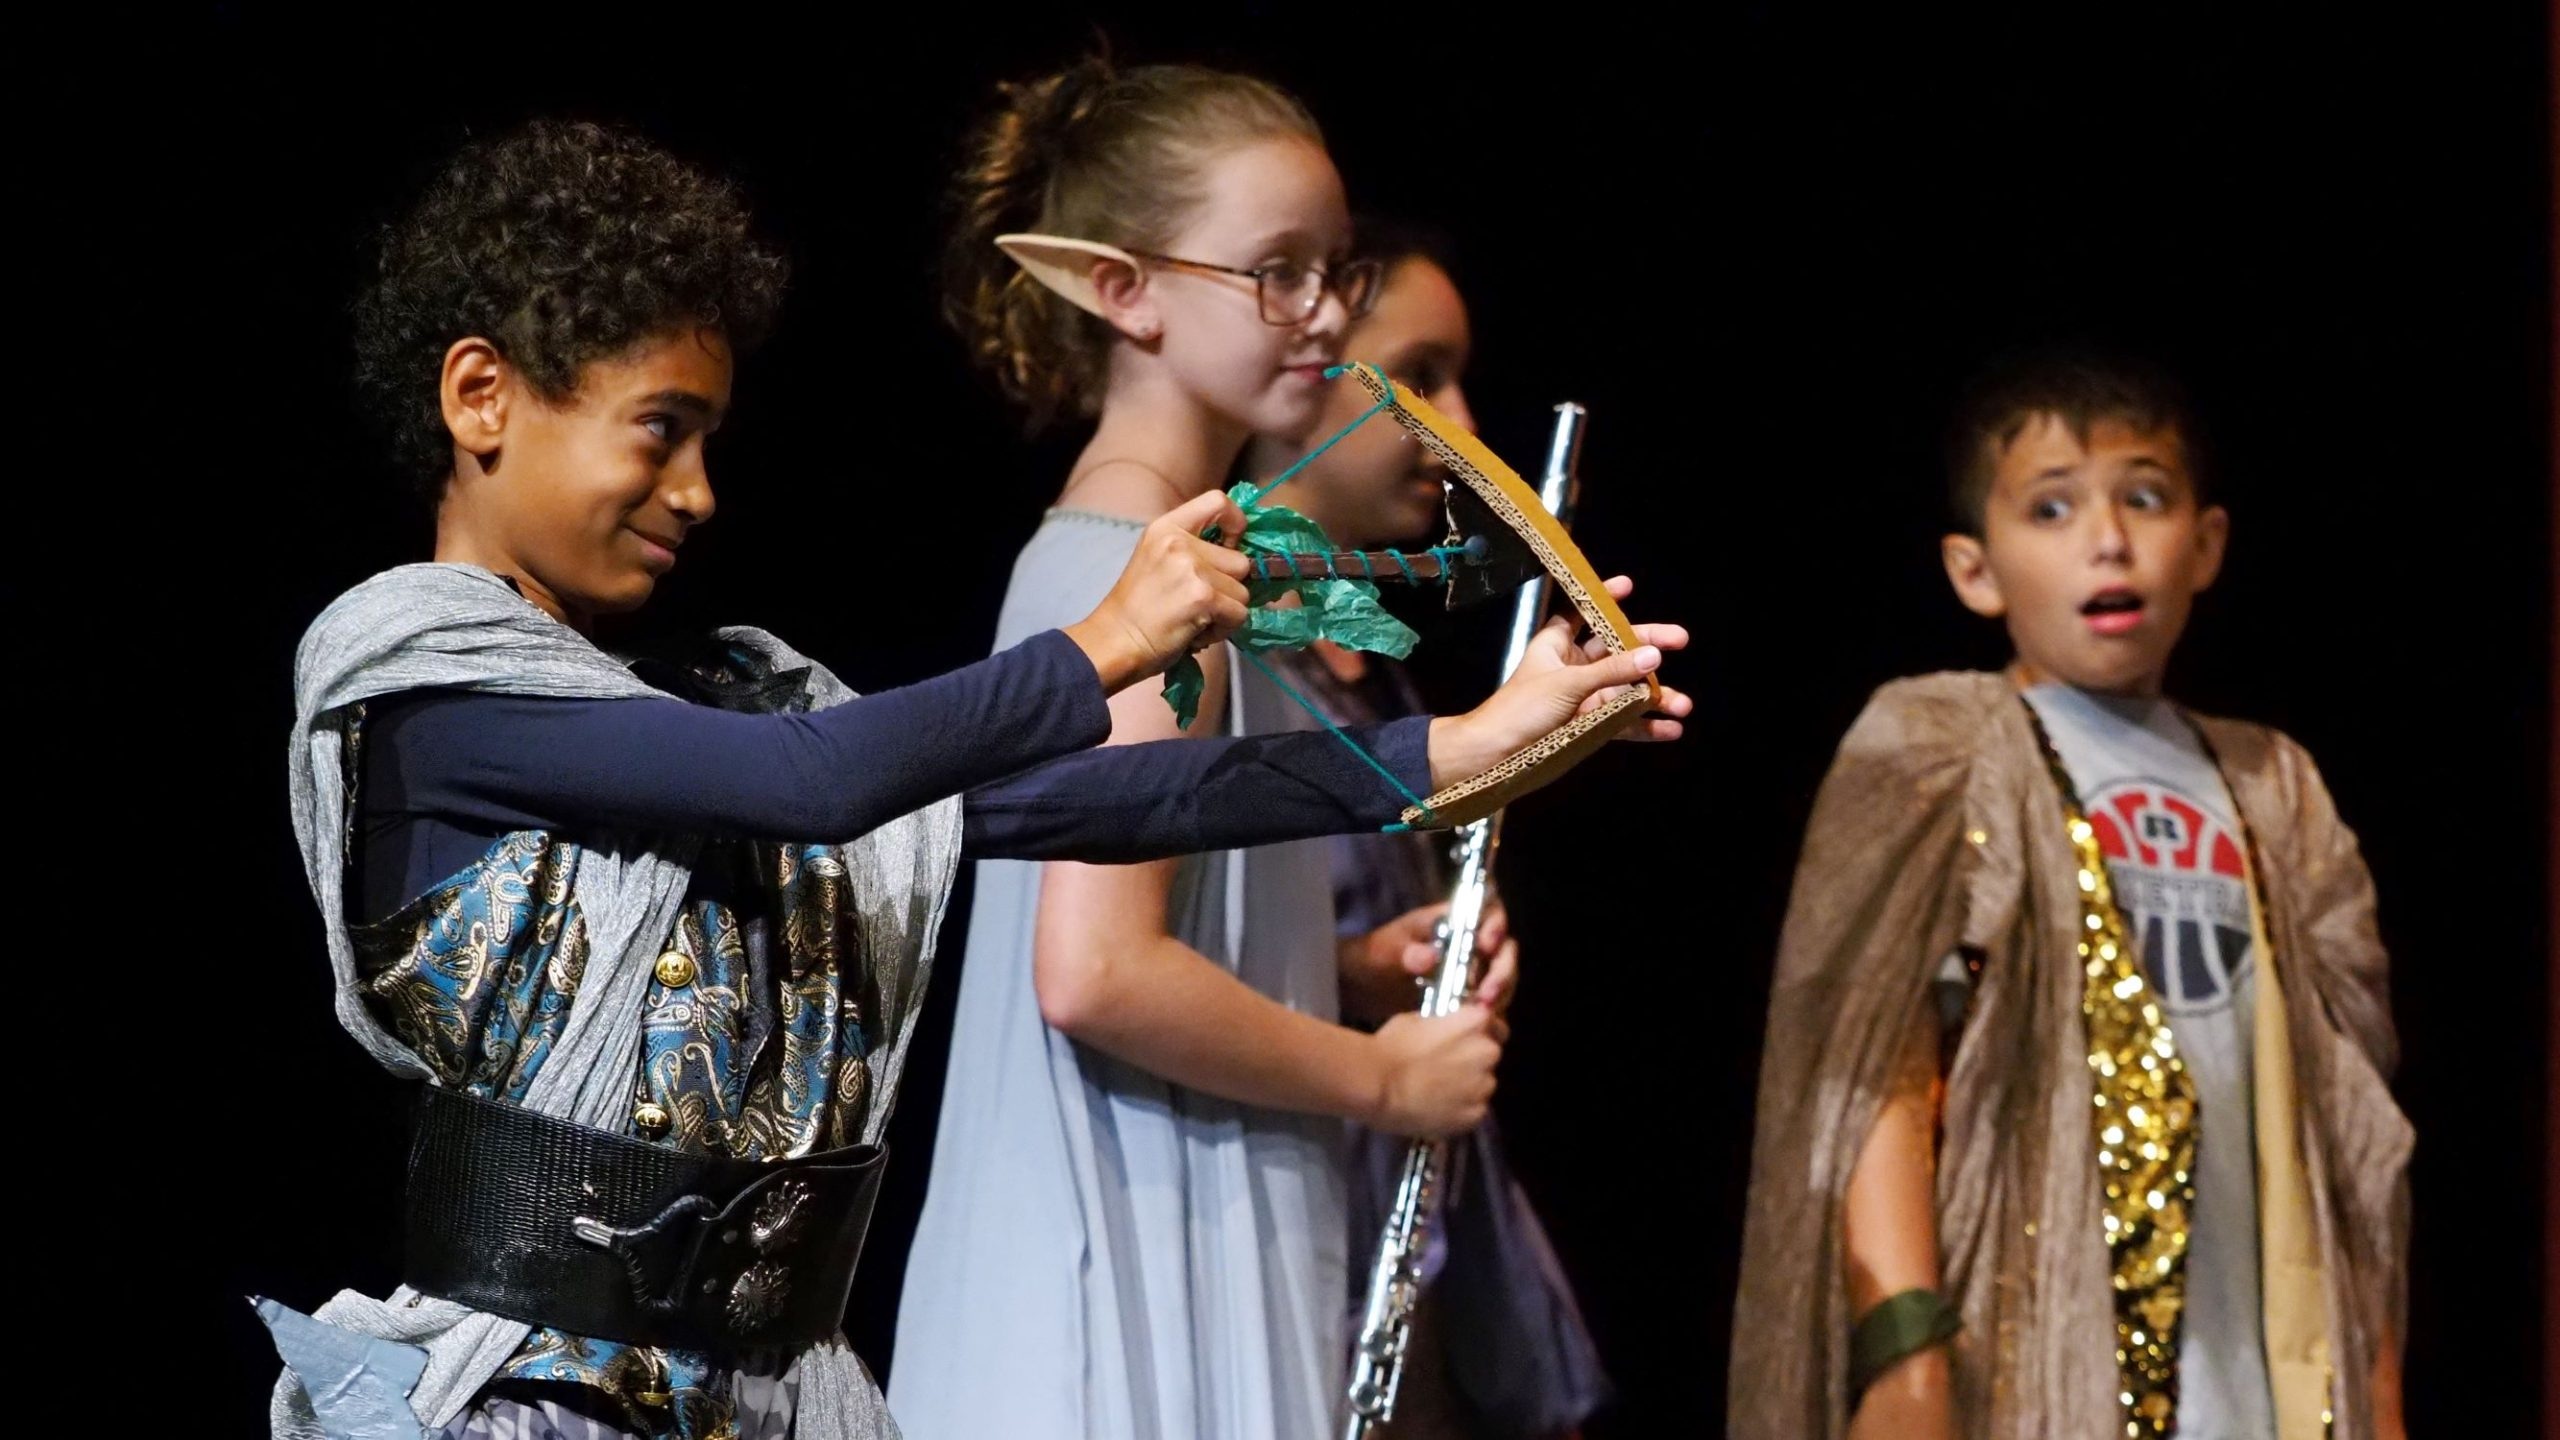 poly summer campers performing arts stage performance